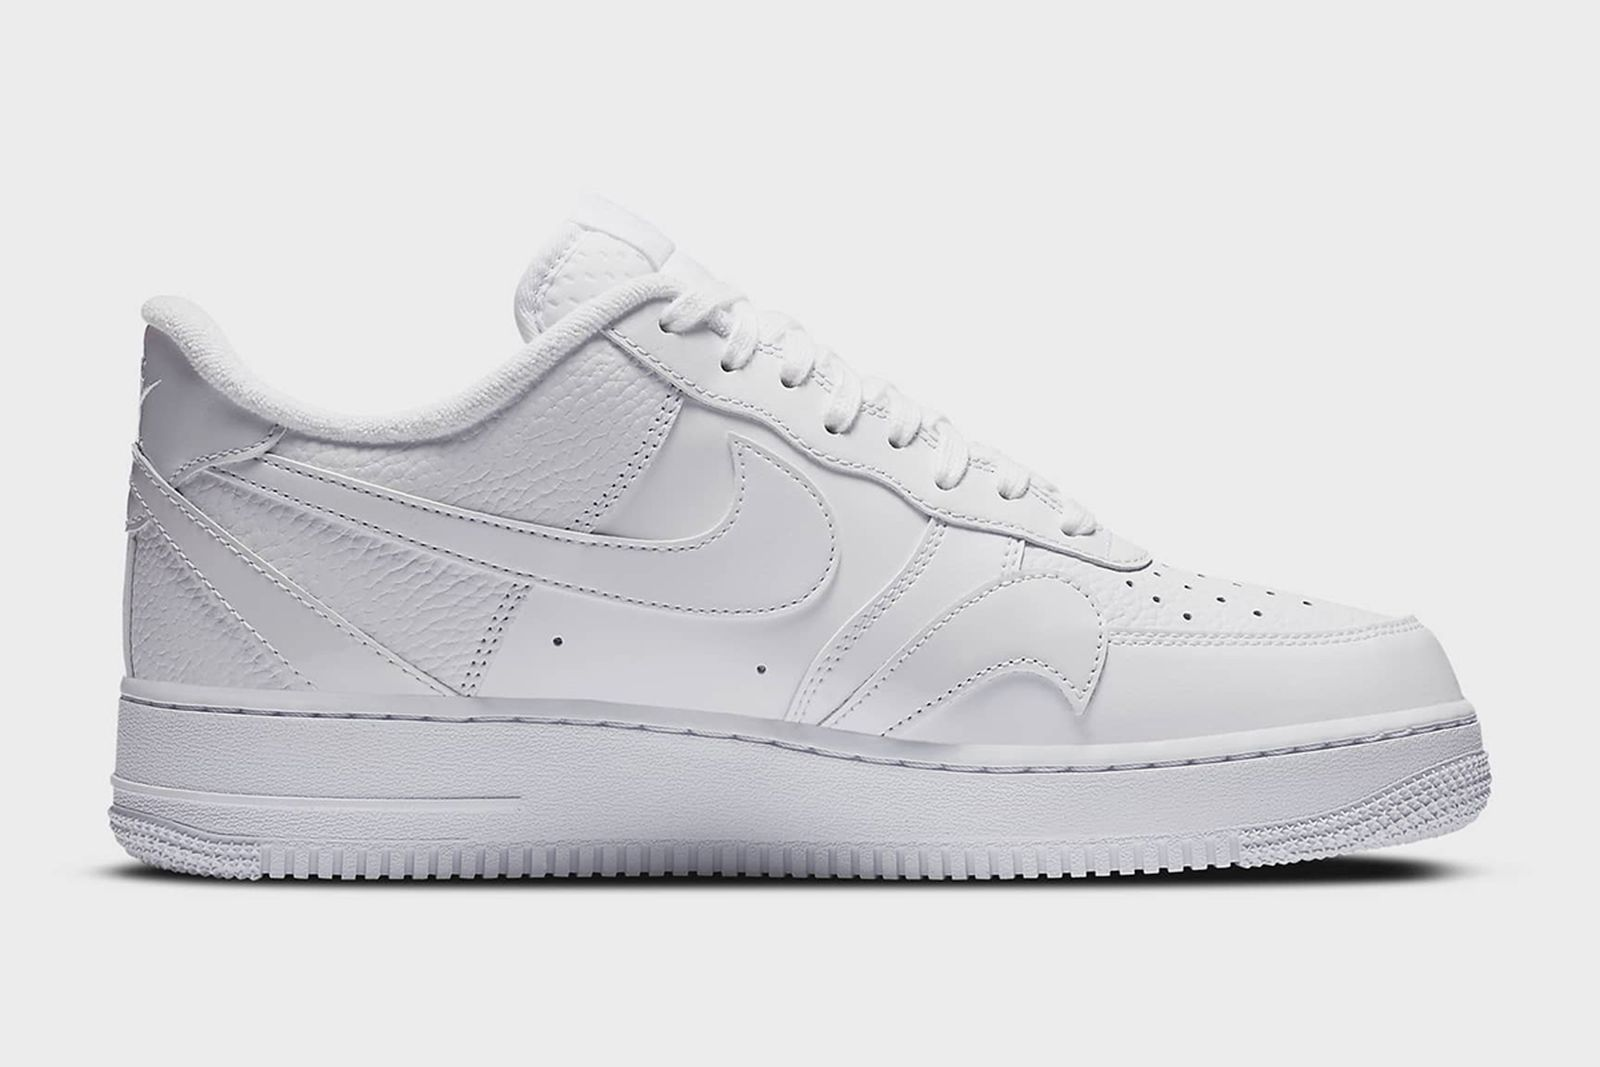 """Nike Air Force 1 Low """"Misplaced Swoosh"""""""